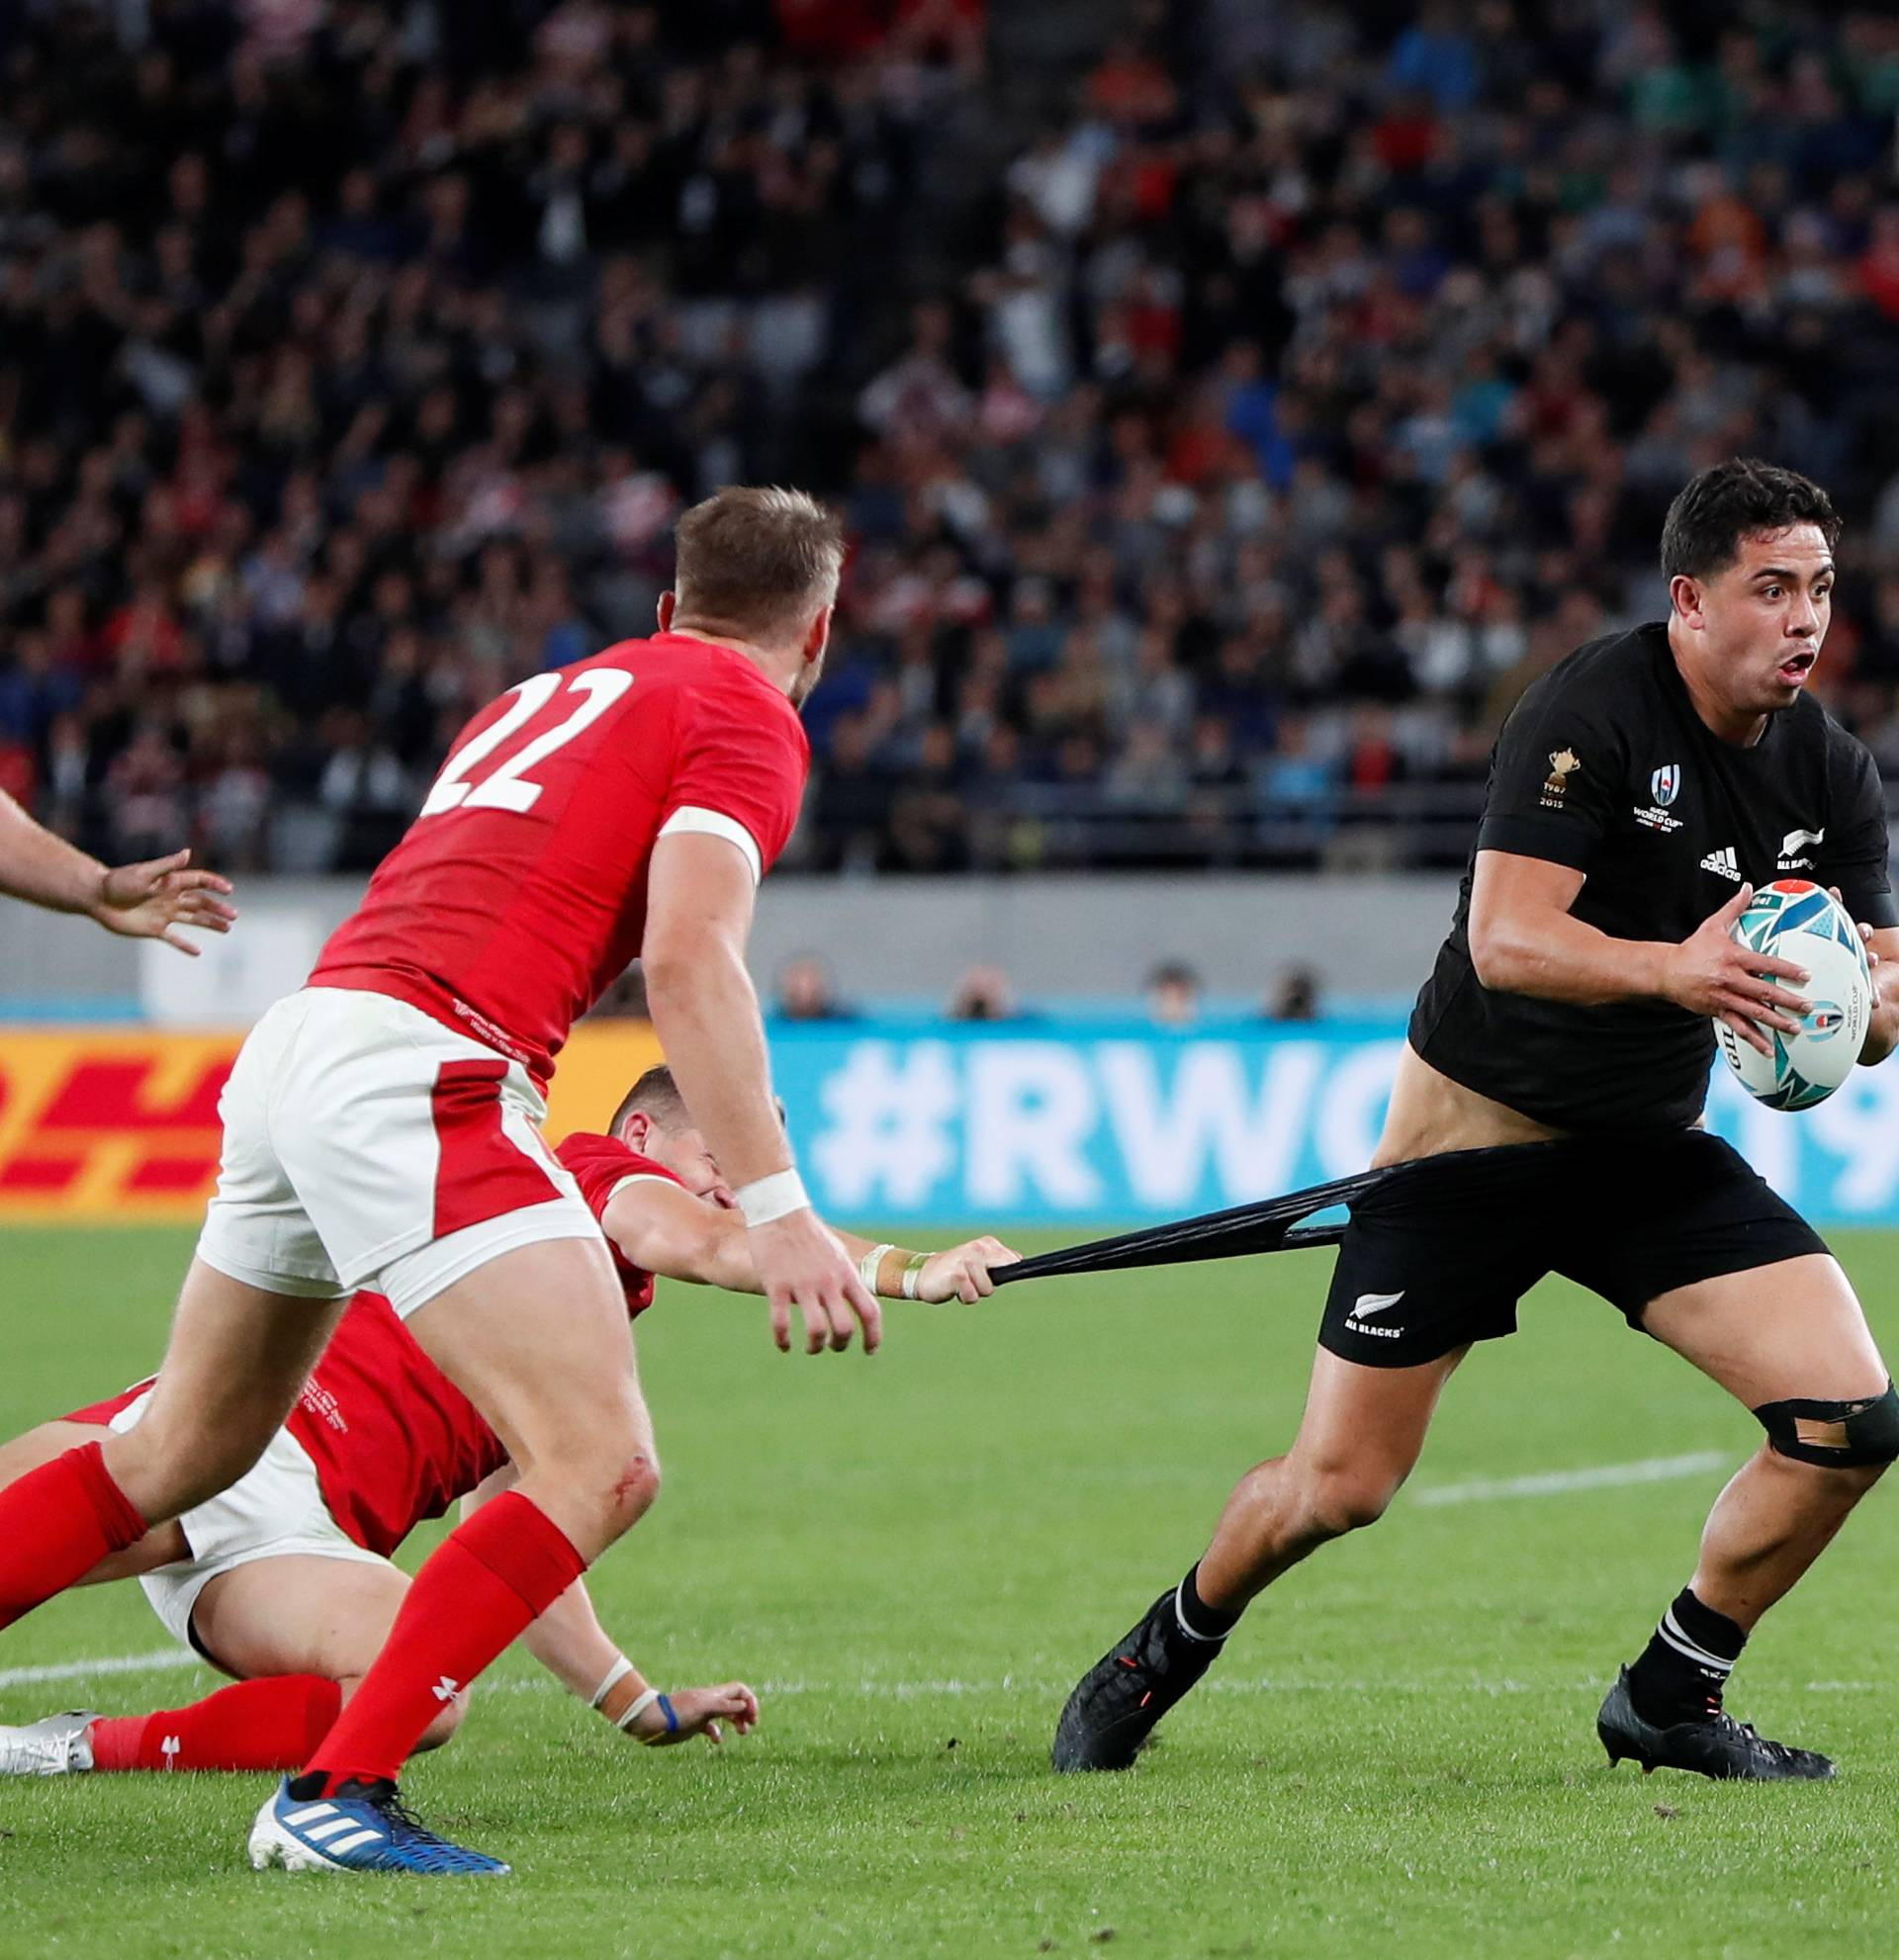 Rugby World Cup - Bronze Final - New Zealand v Wales